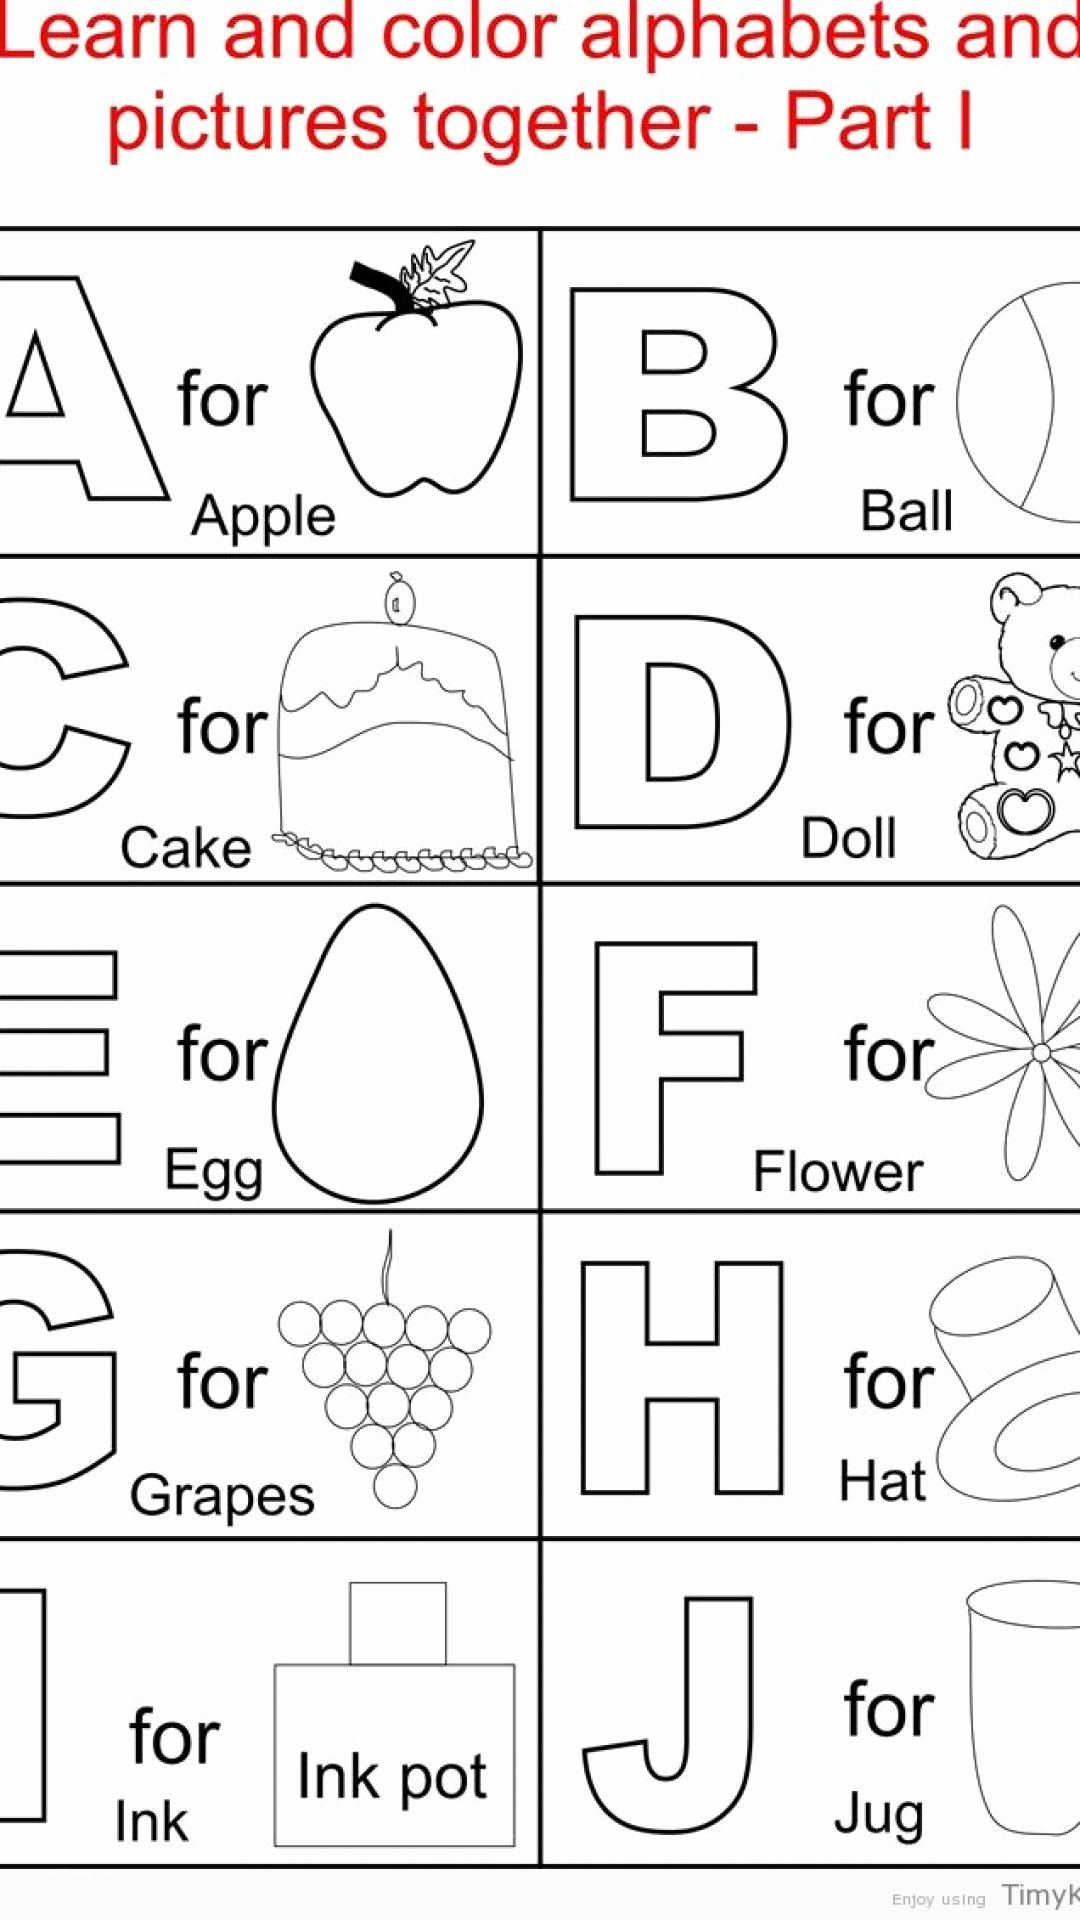 Alphabet Coloring Worksheets for Preschoolers top Alphabet Coloring Pages for toddlers Beautiful Pdf